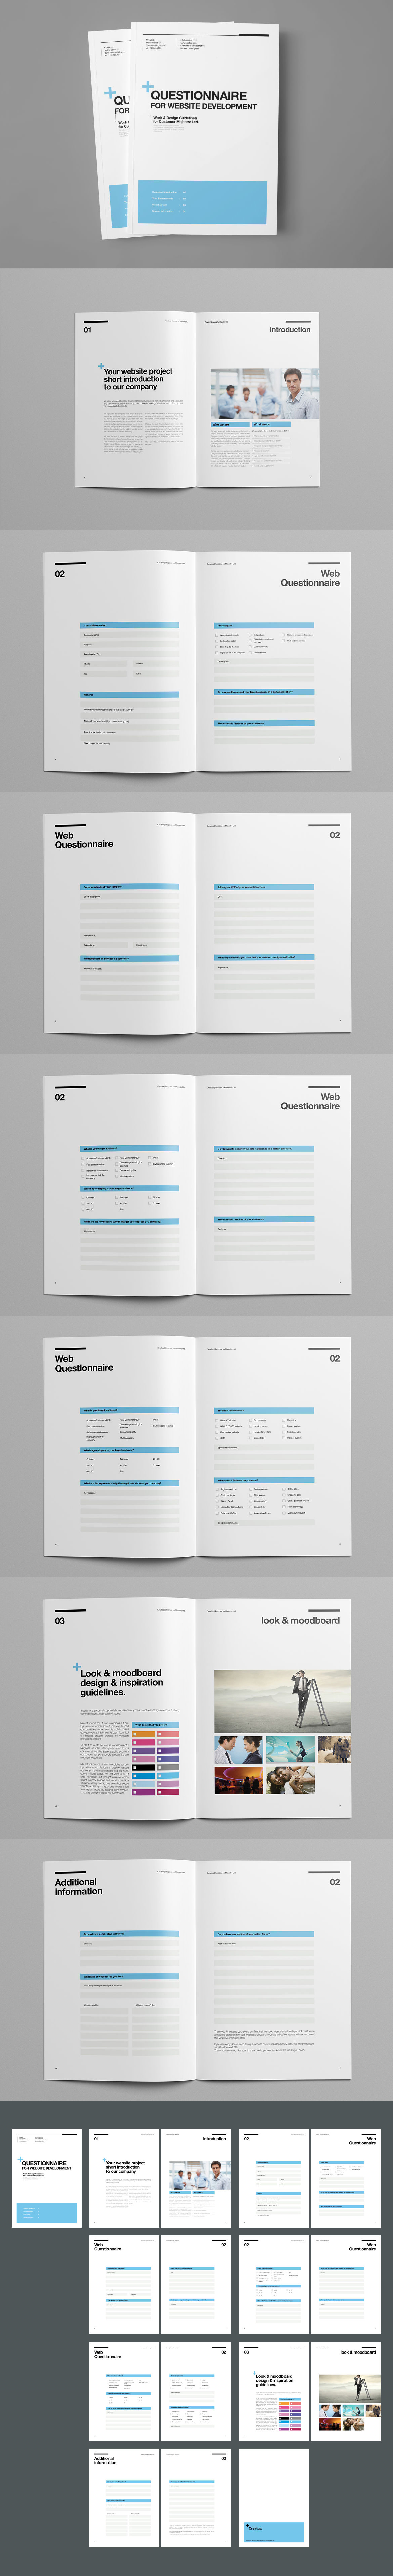 Questionnaire Proposal Template InDesign INDD - 16 Pages, A4 and US ...